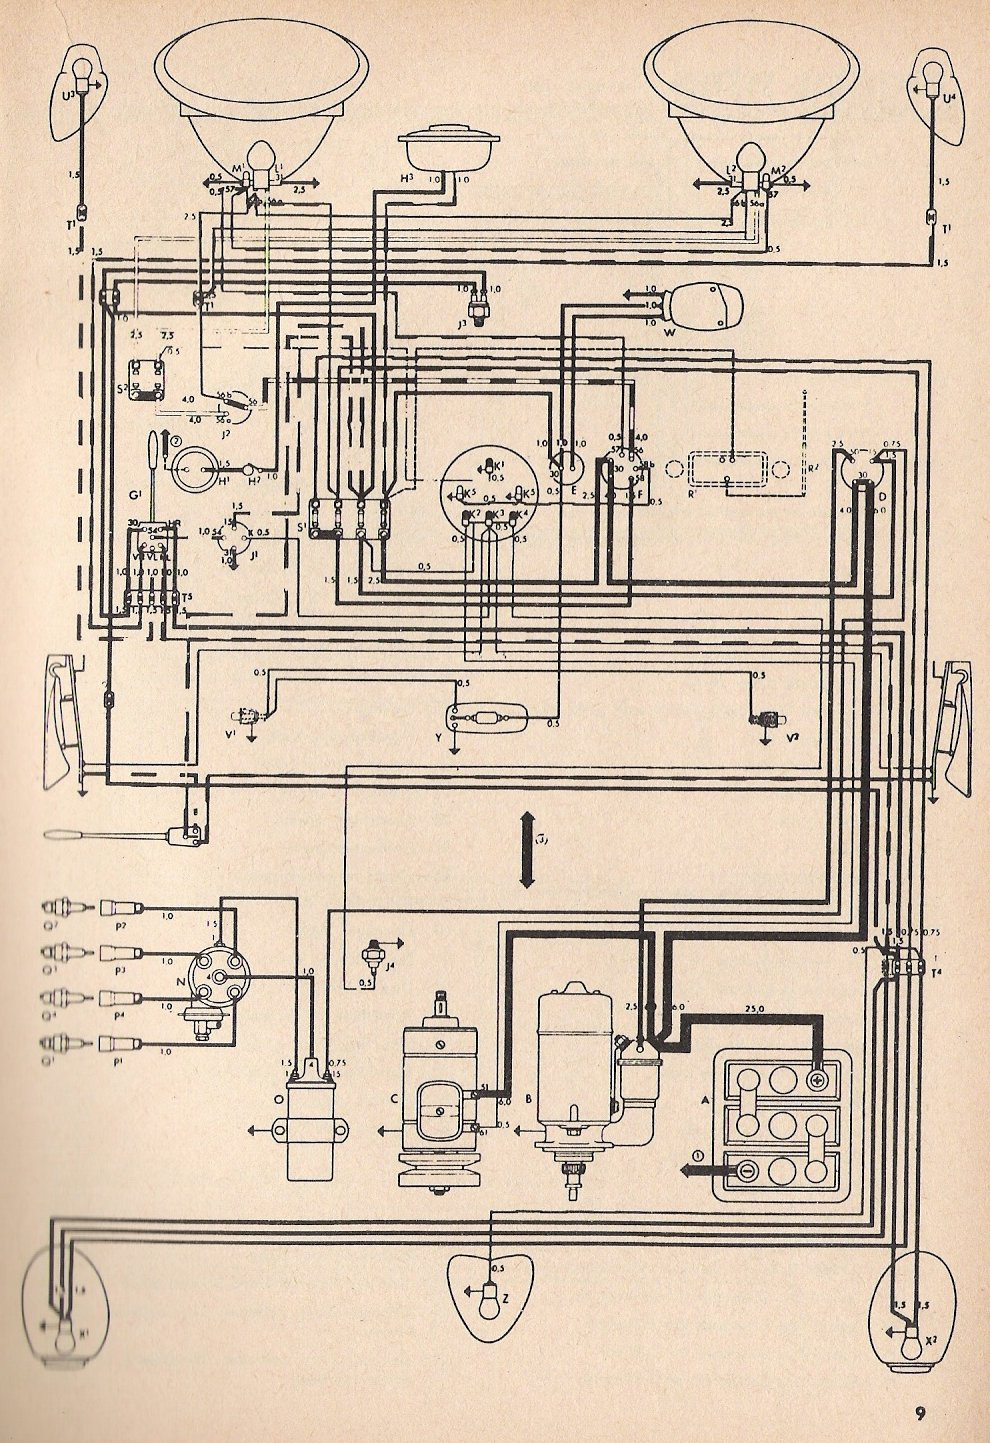 Type 1 Wiring Diagrams Light Diagram 78 Chevy Nova